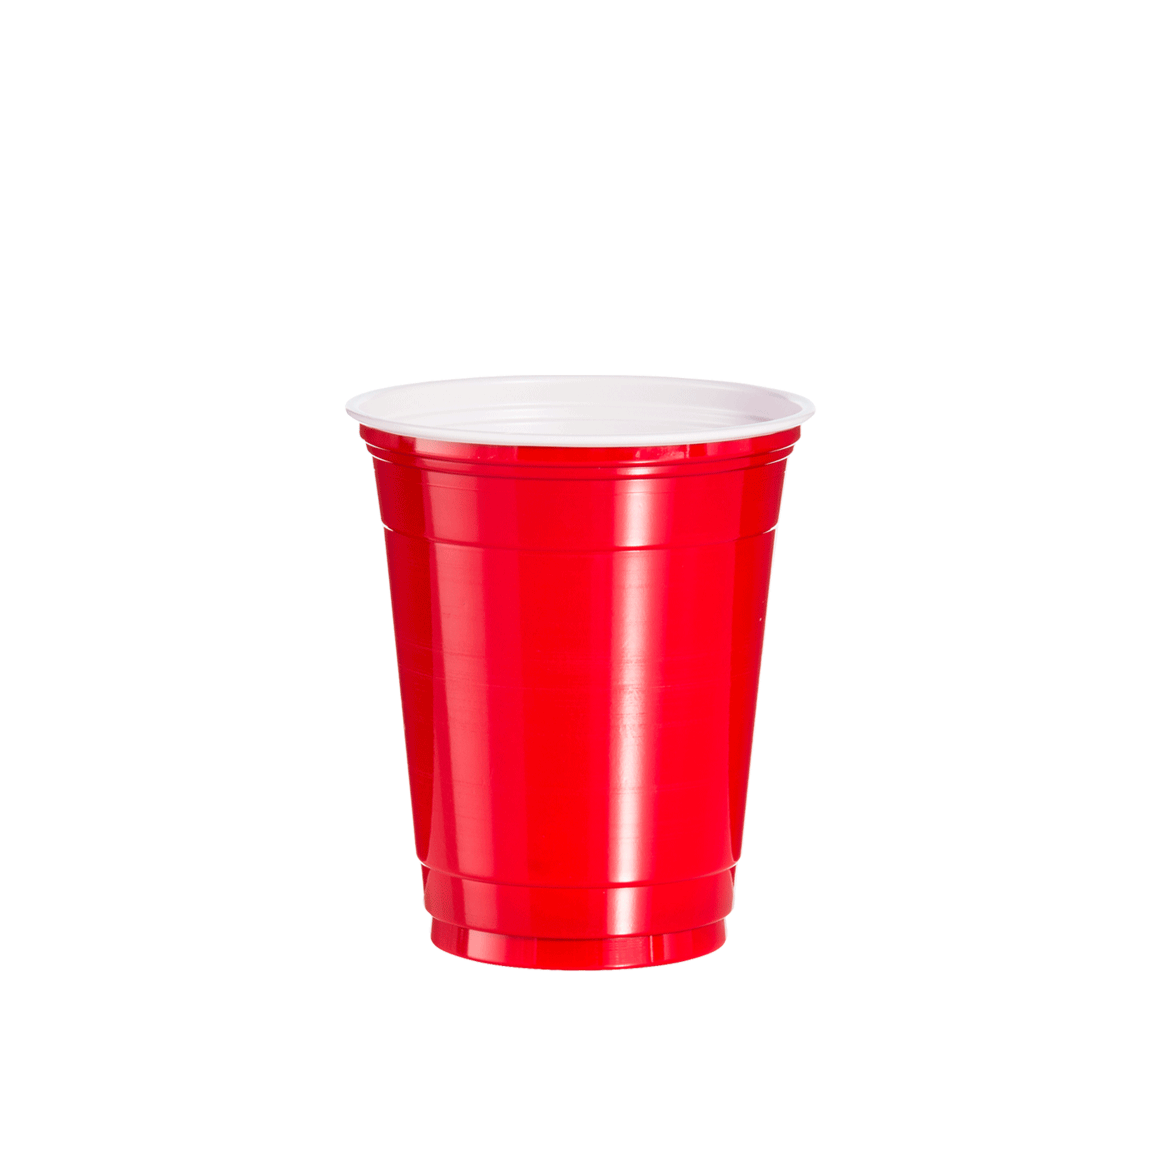 Twelve ounce red solo cup